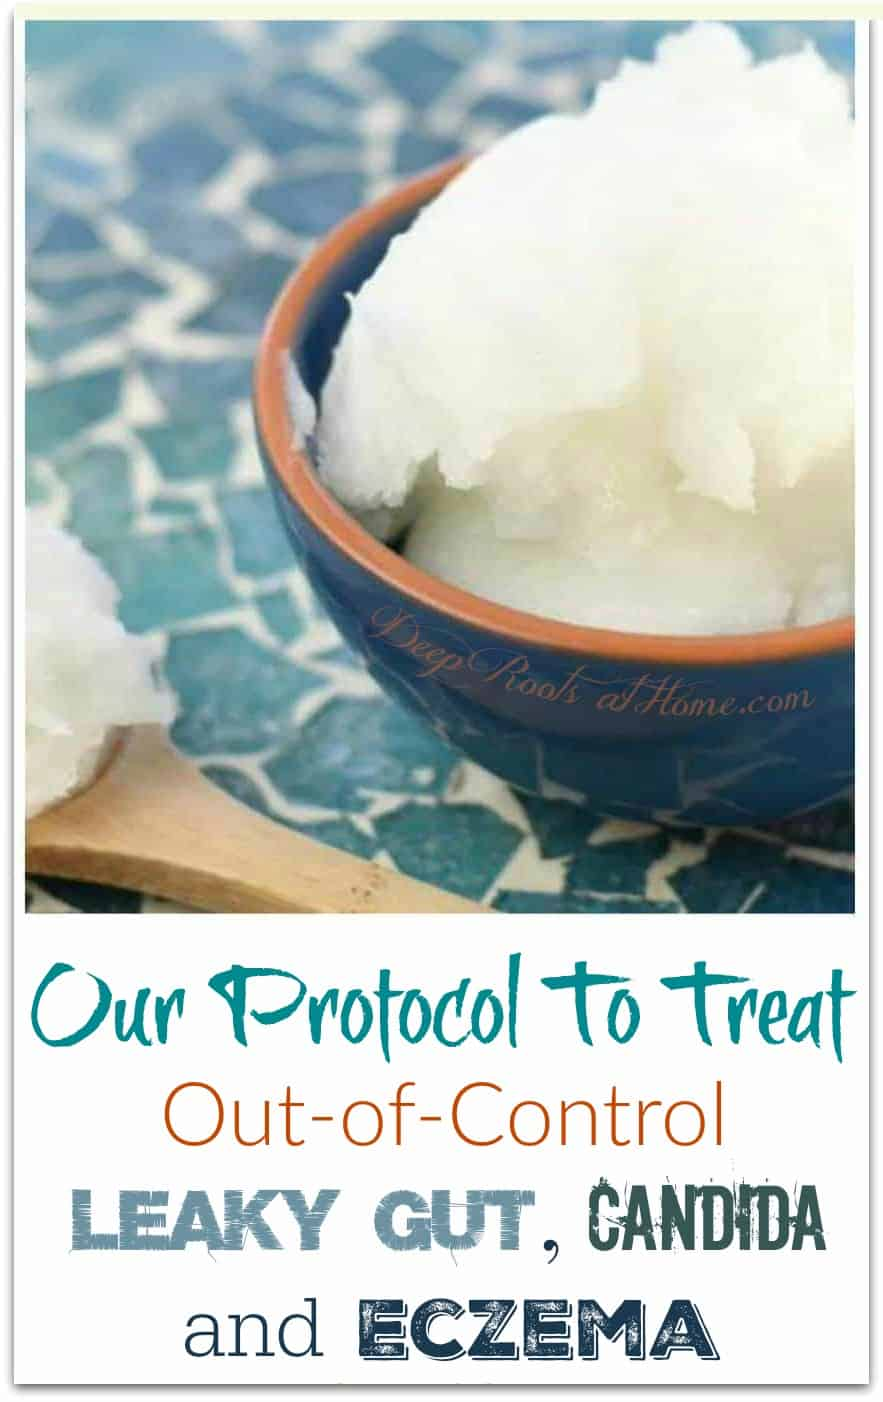 Our Protocol To Treat Out-of-Control Leaky Gut, Candida & Eczema. coconut oil in a bowl